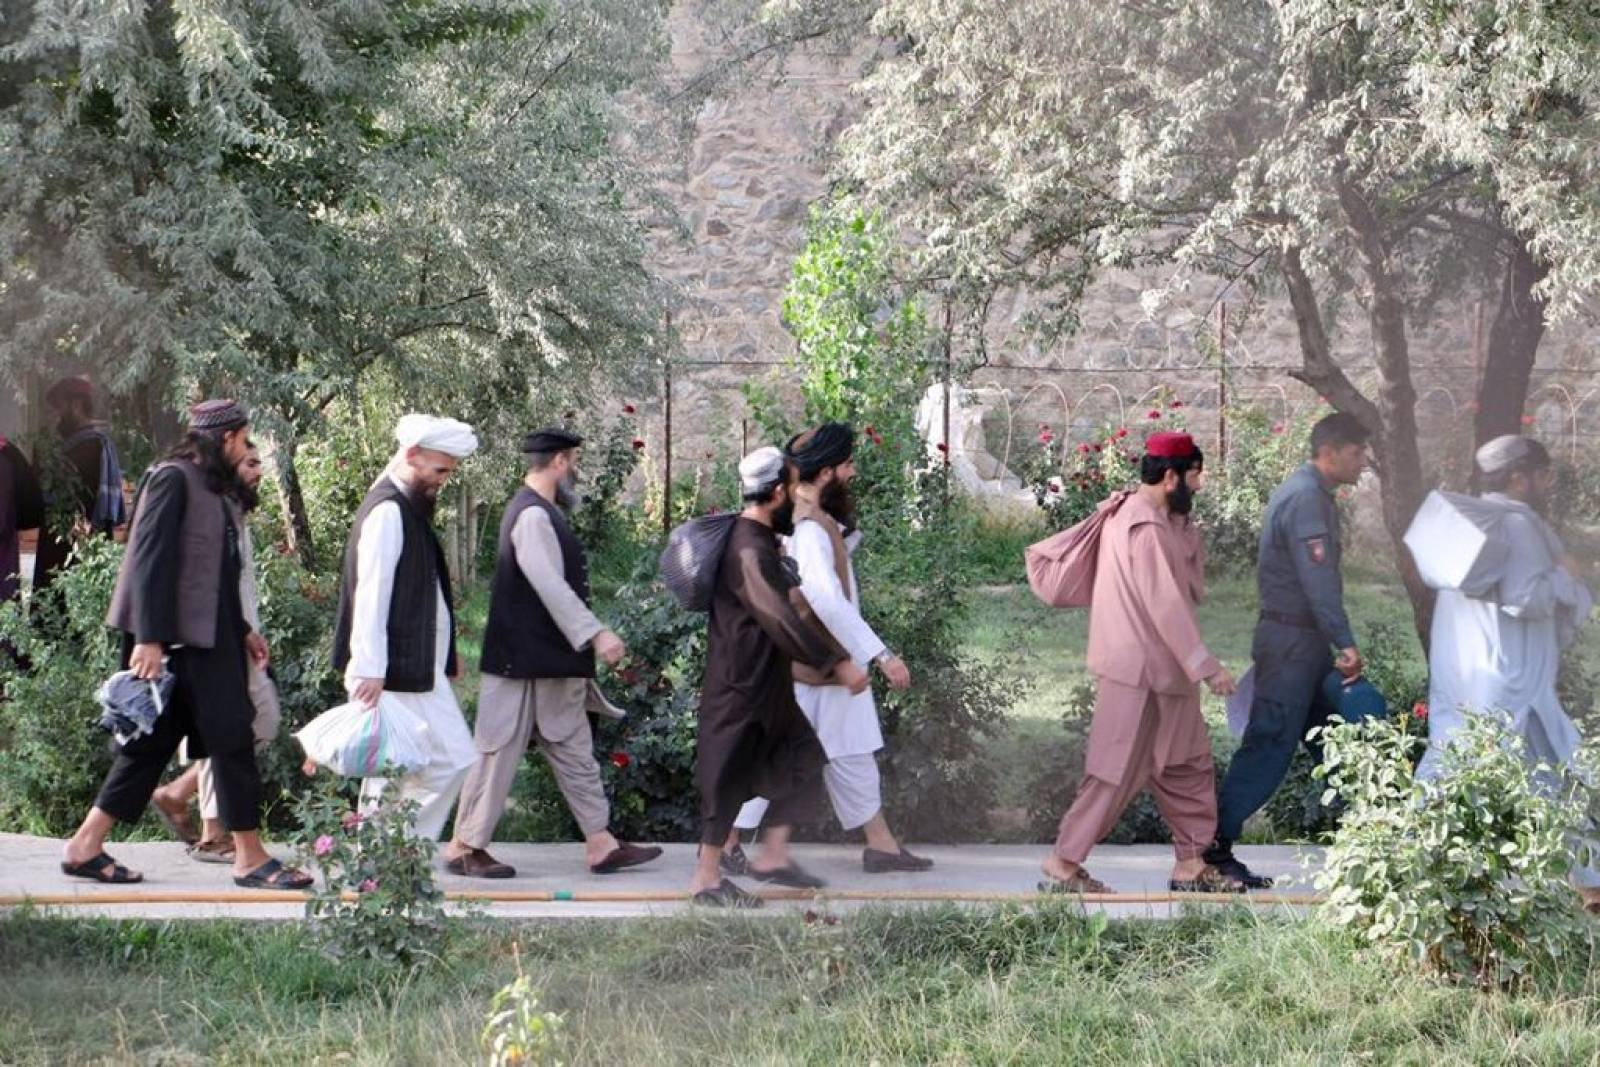 Newly freed Taliban prisoners walk at Pul-e-Charkhi prison, in Kabul